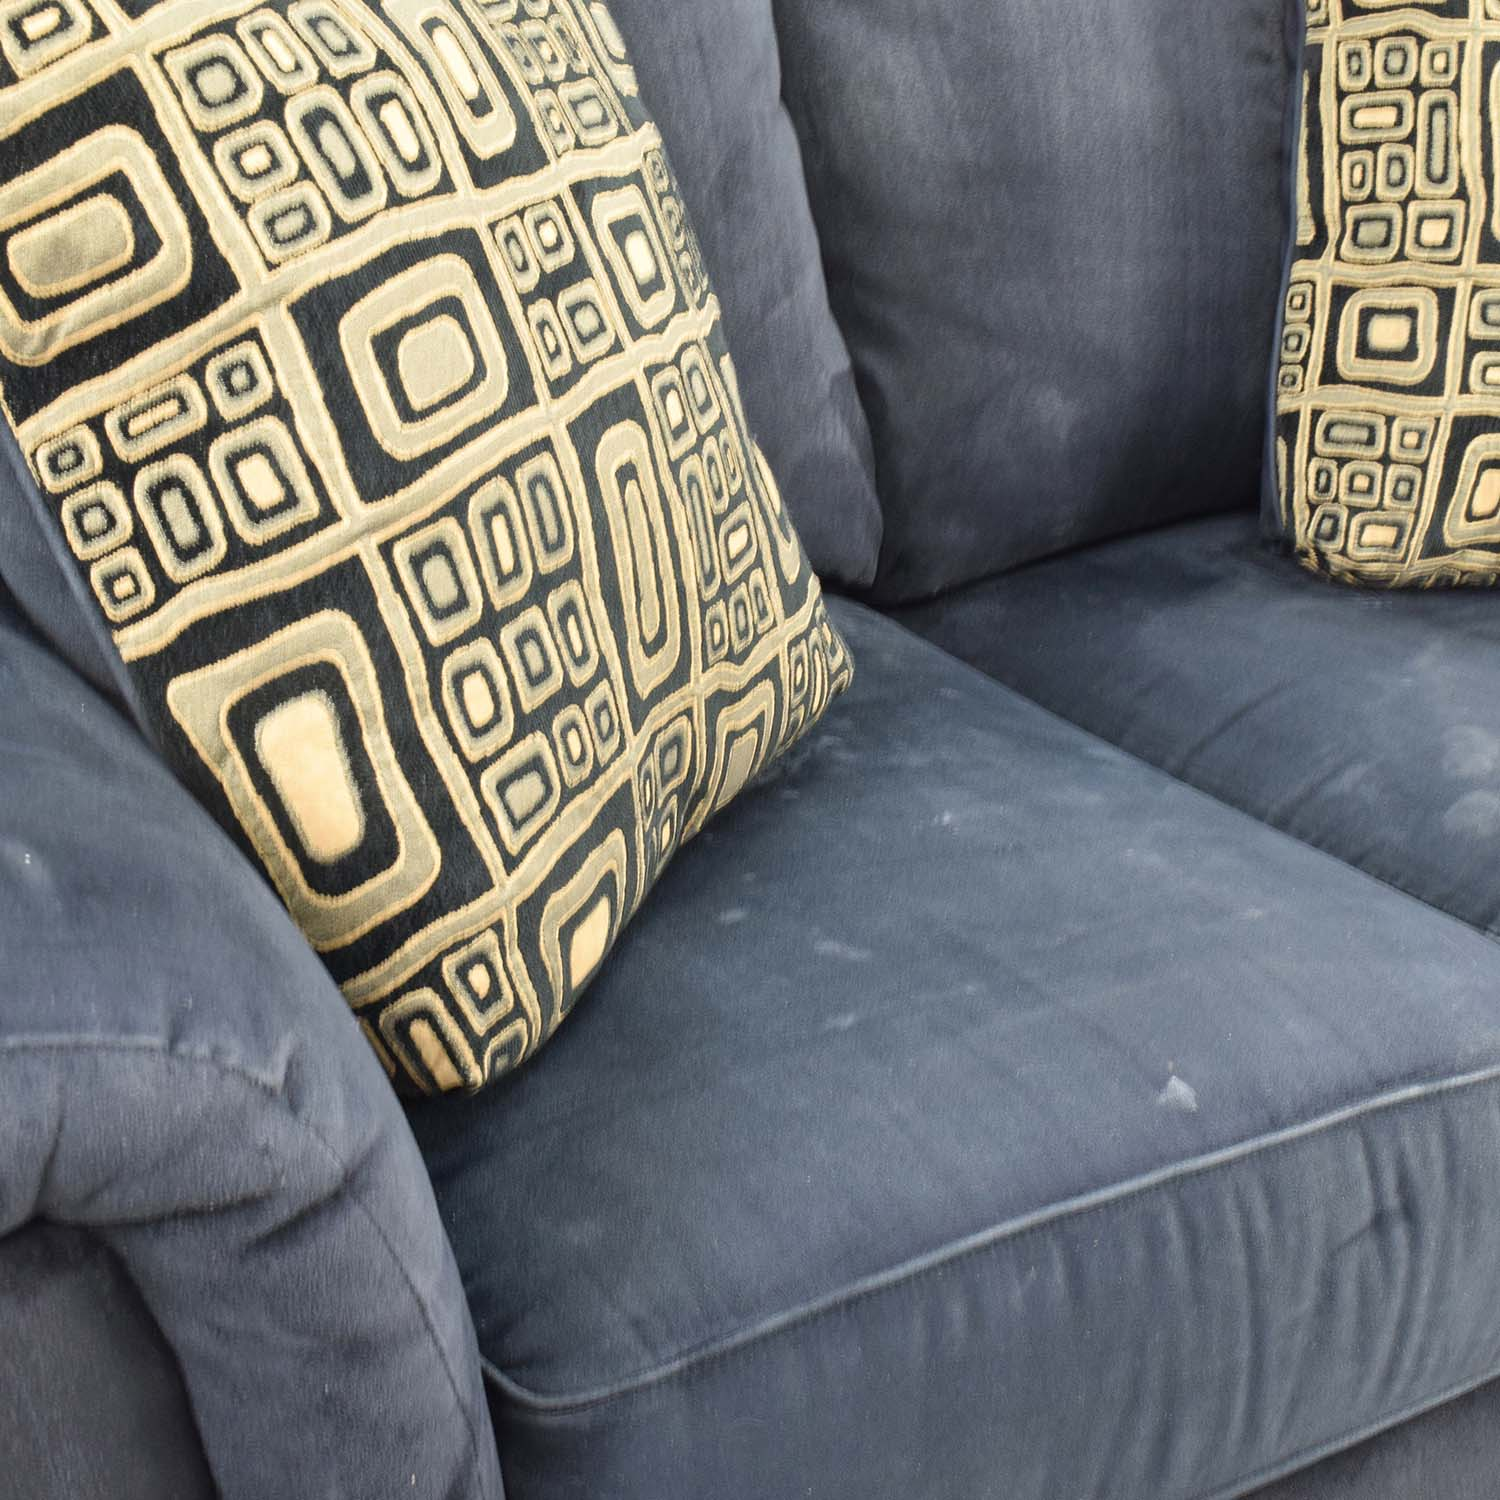 ... Ashley Furniture Ashley Furniture Janley Loveseat Nyc